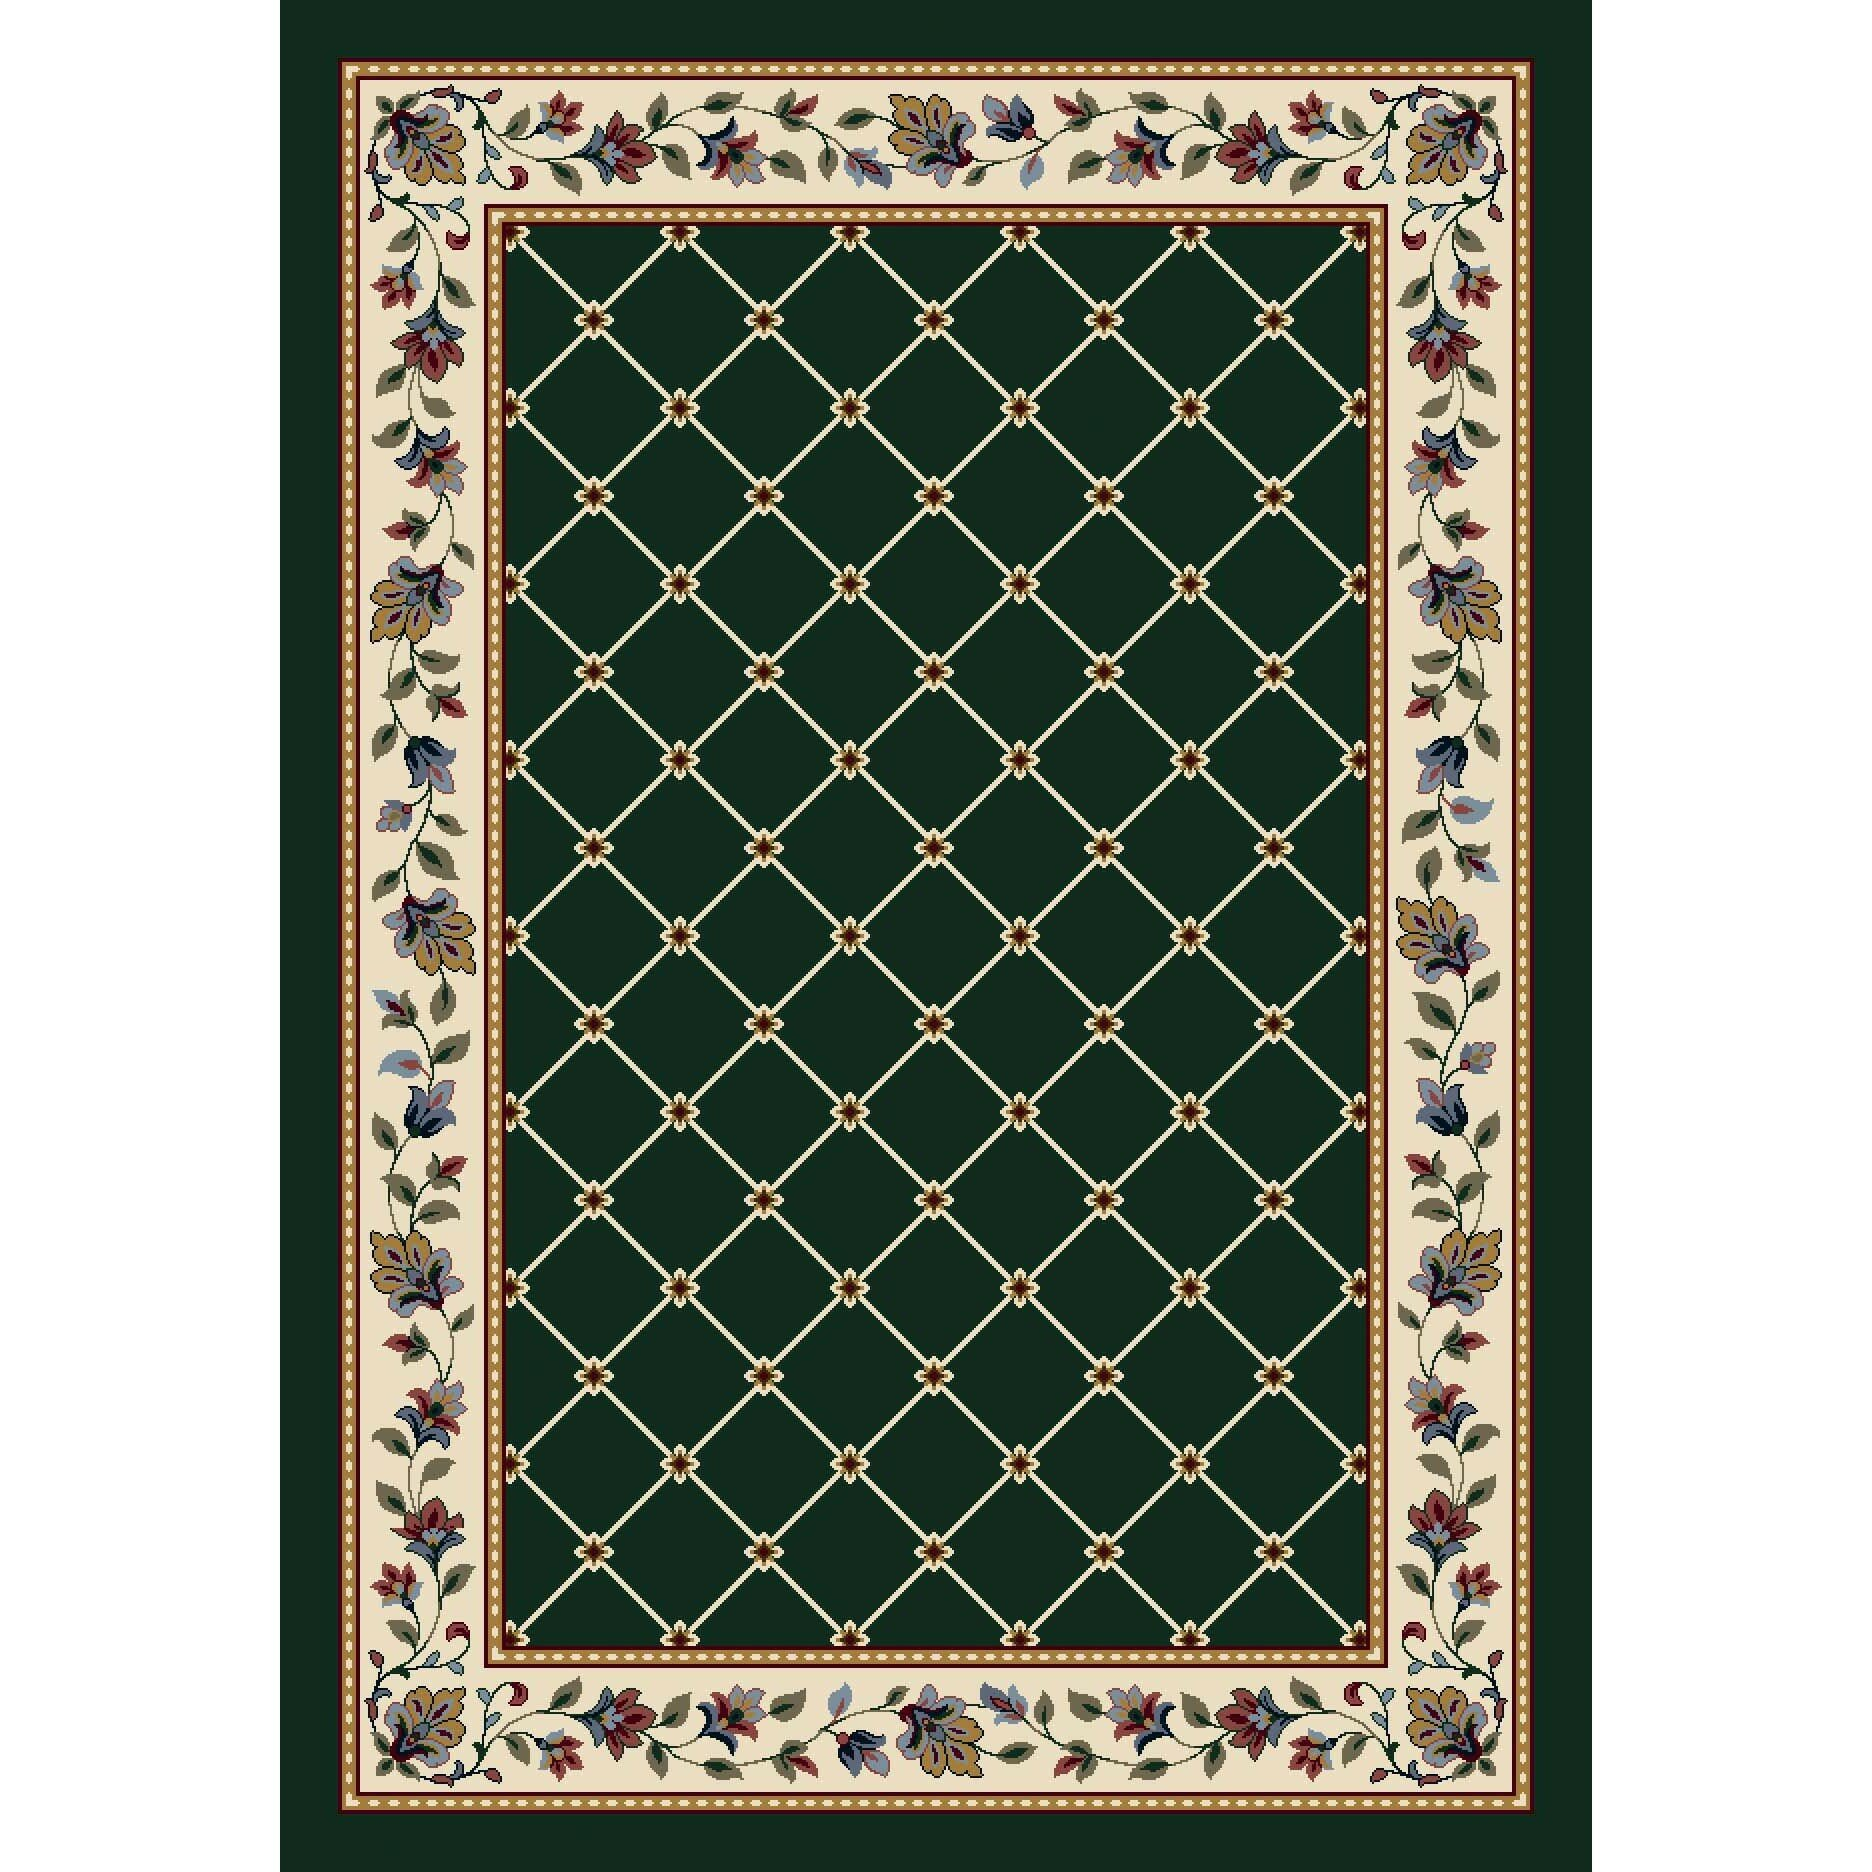 Details About August Grove Gleason Symphony Emerald Area Rug